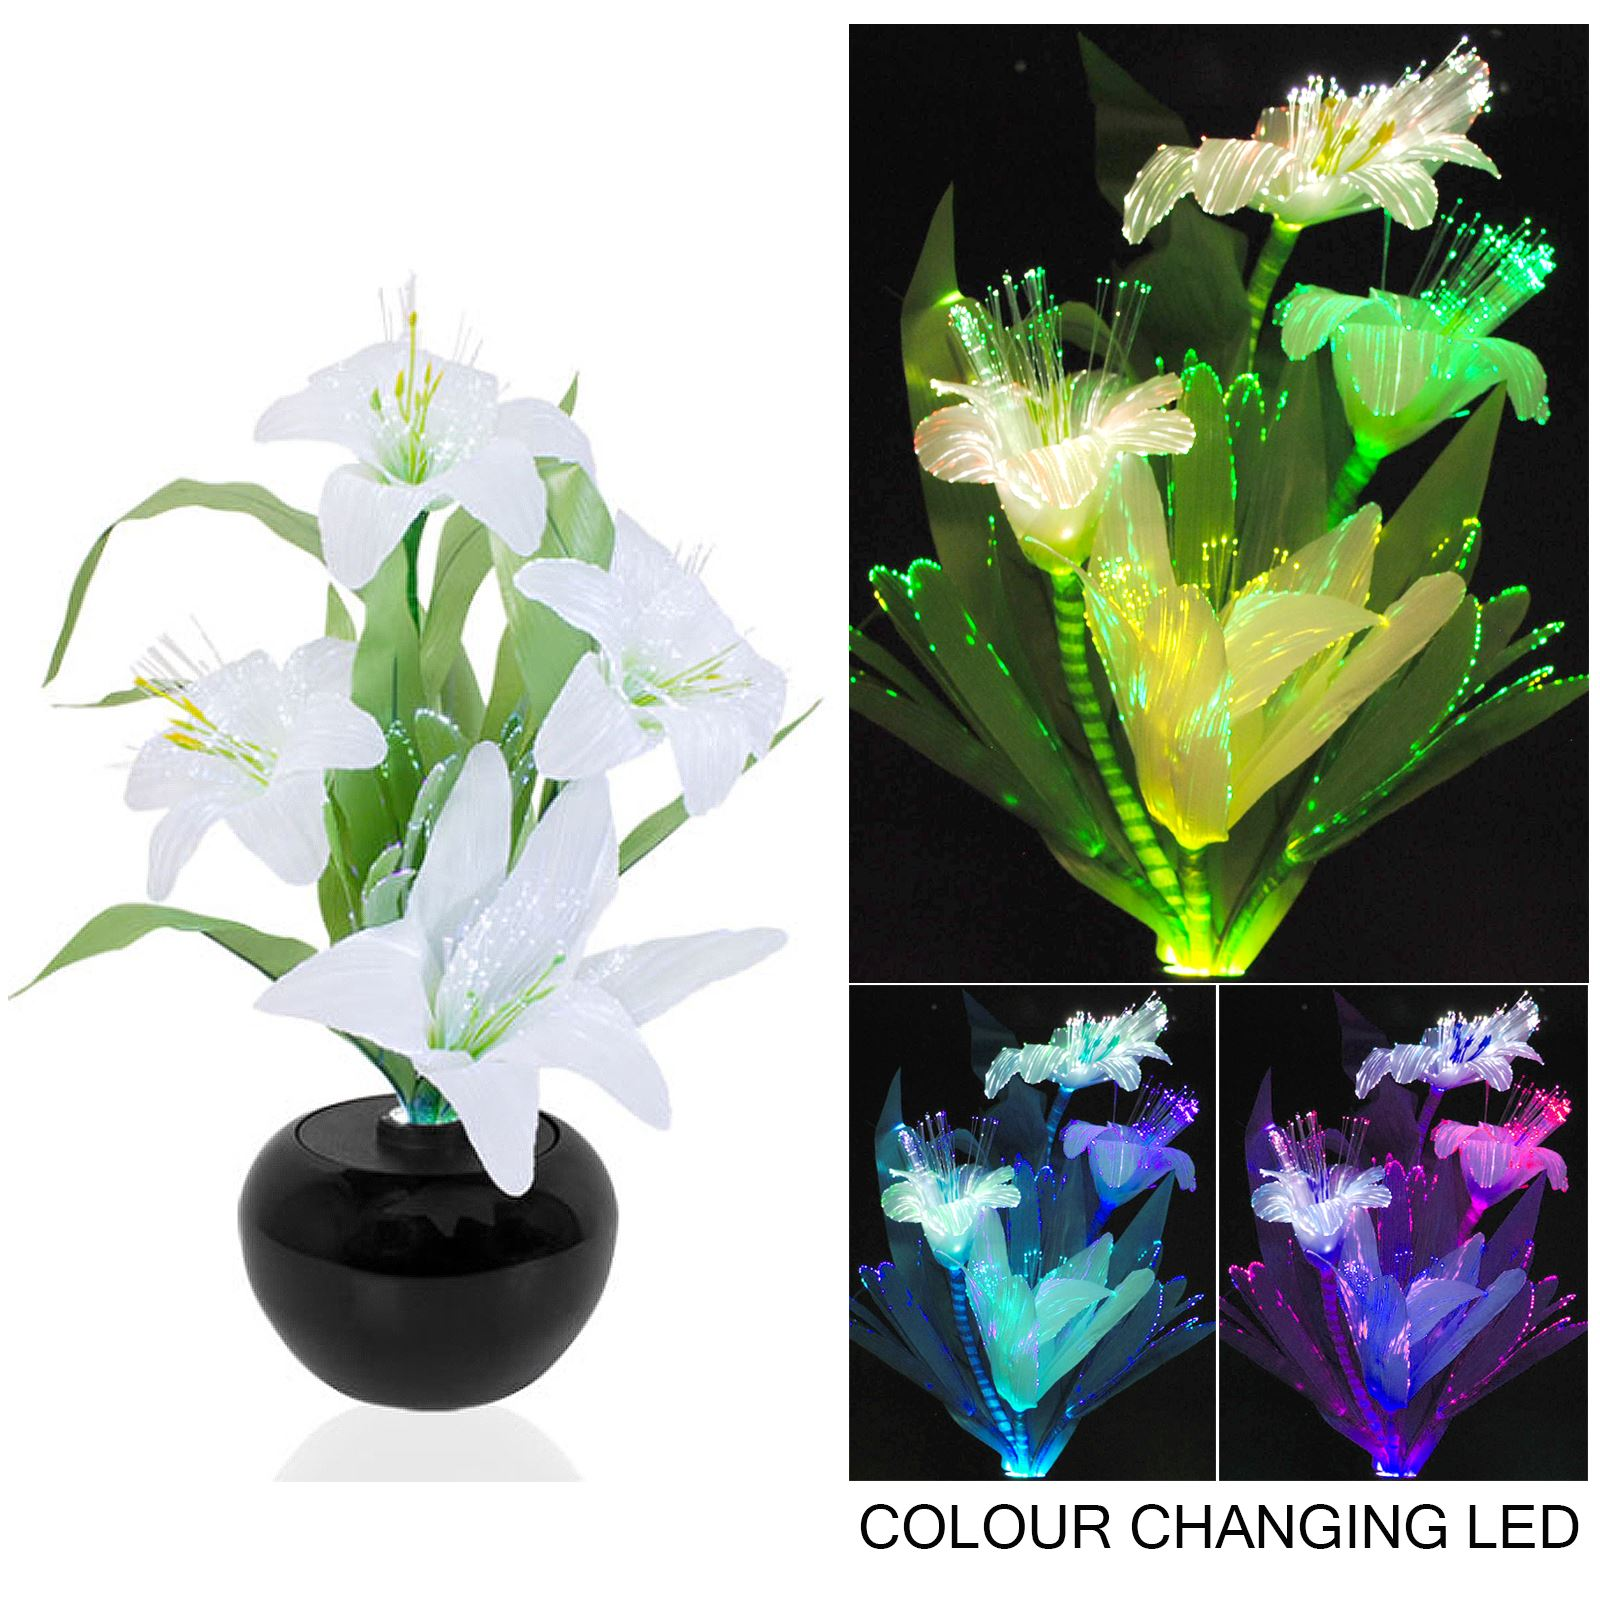 Rgb Colour Changing Flower Vase Mood Light Display Led Fibre Optic Wiring A Colours